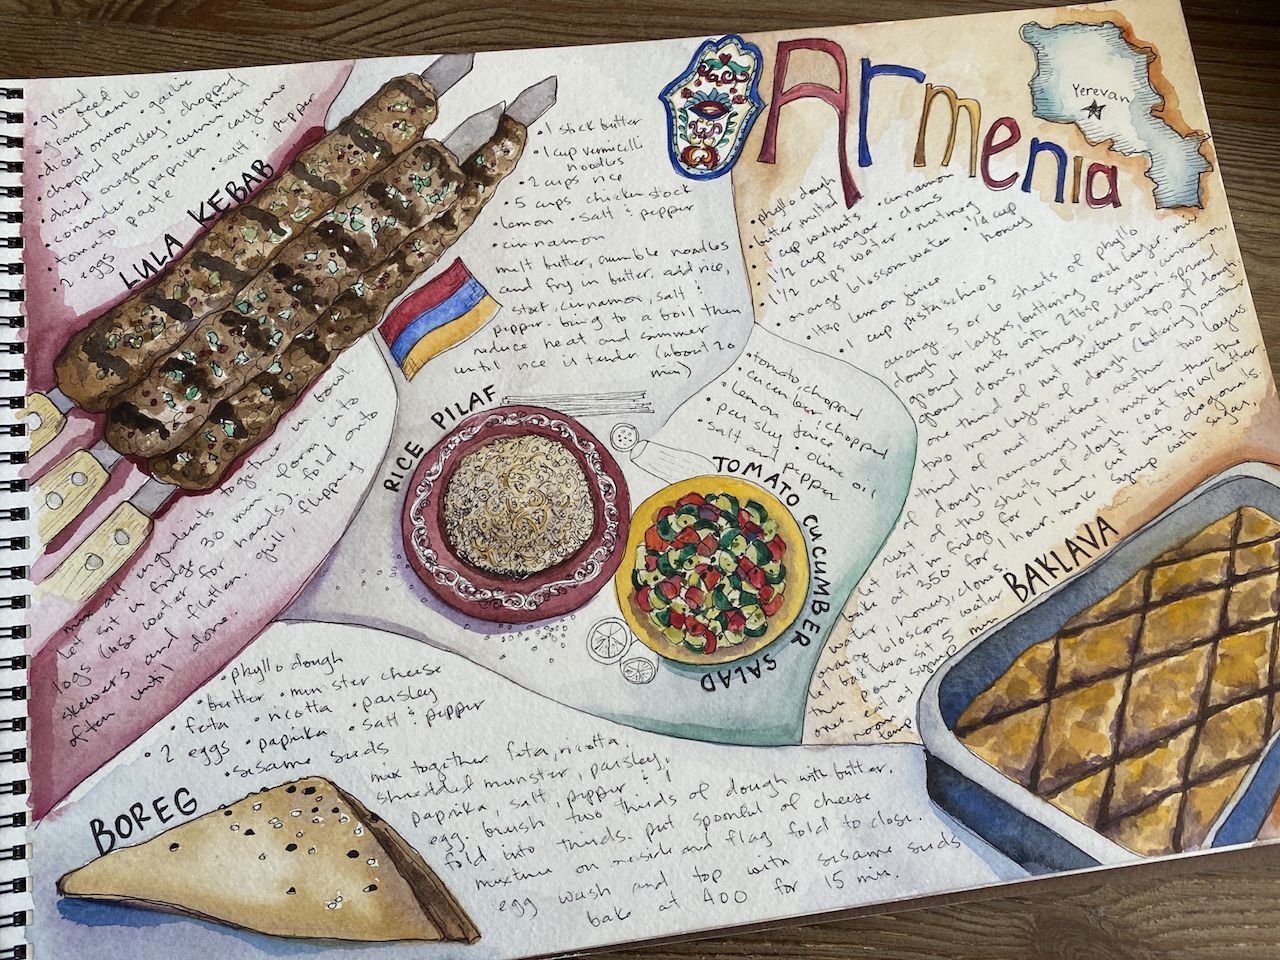 Armenia cook book page